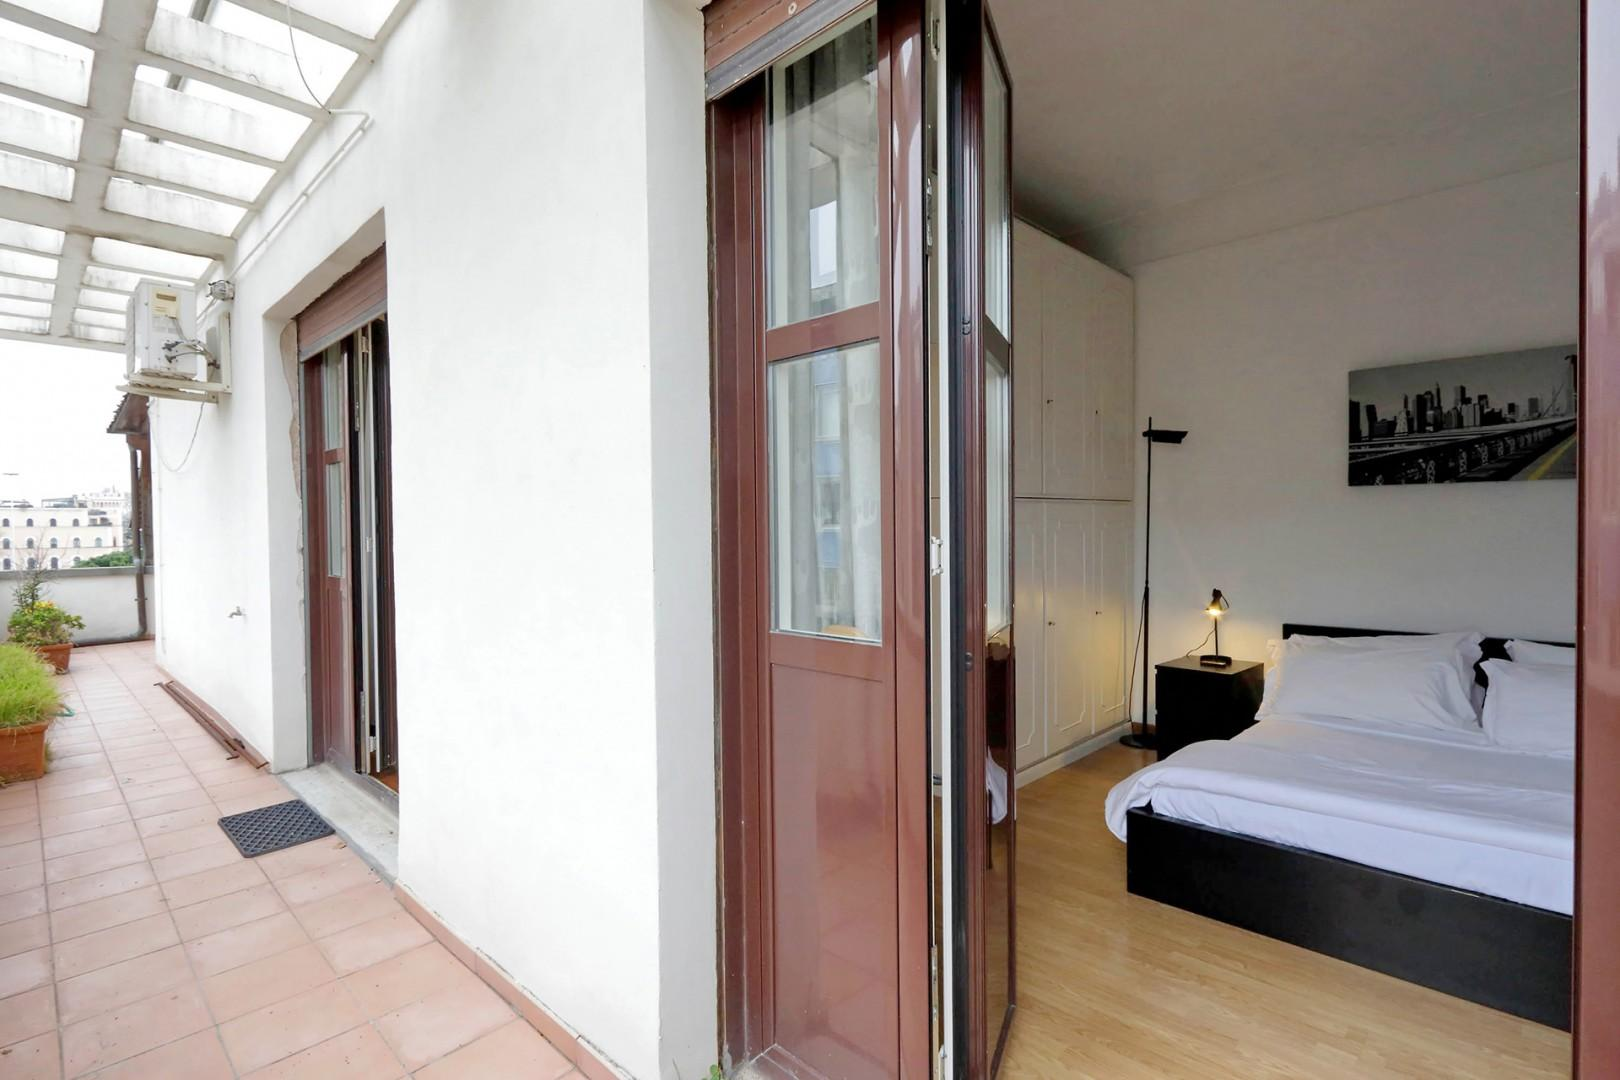 Bedroom opens to the terrace.